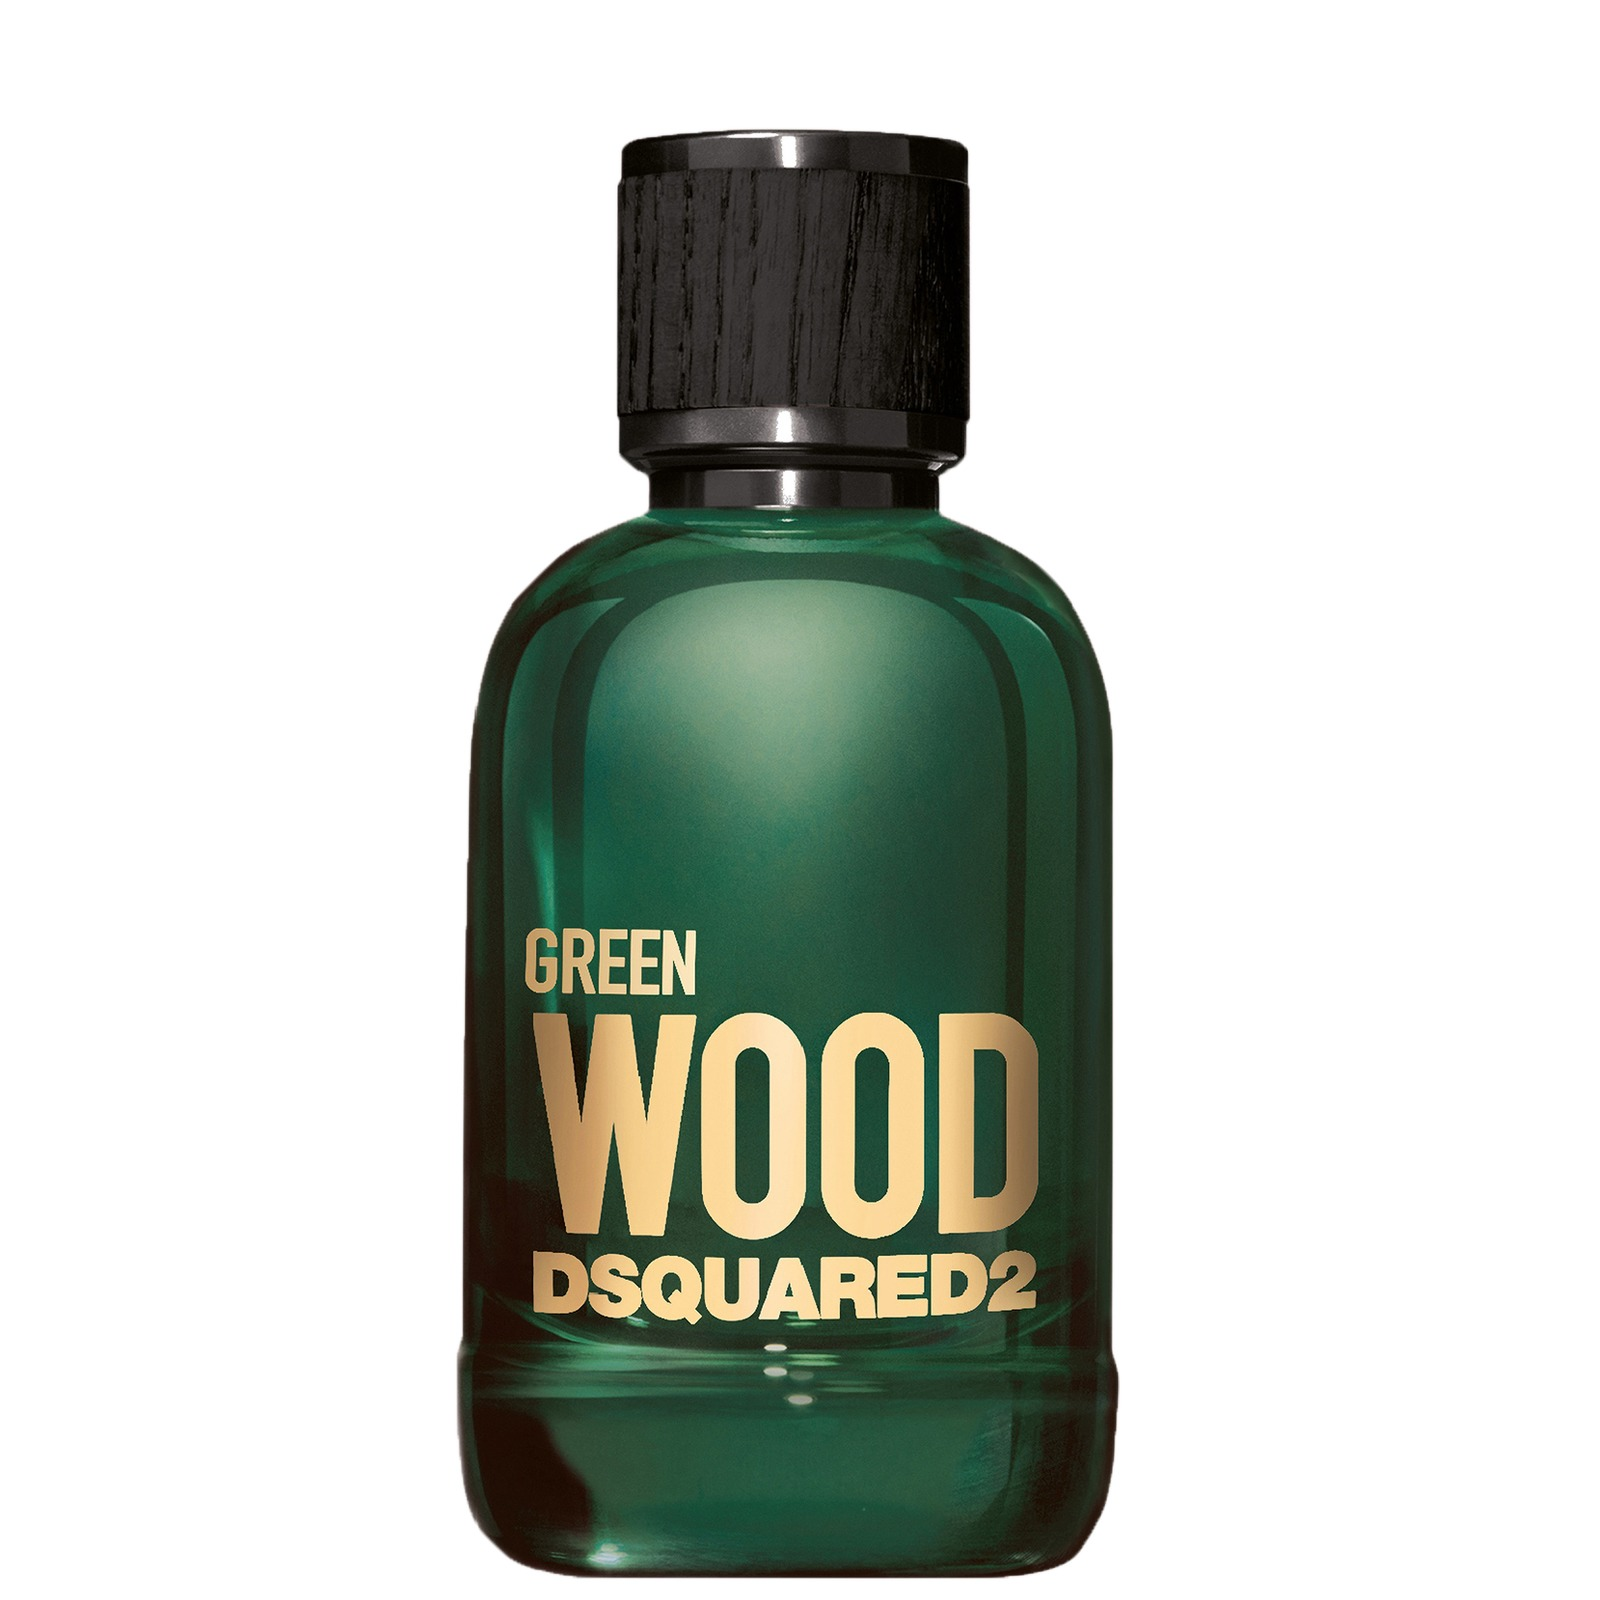 Dsquared2 Green Wood Eau De Toilette